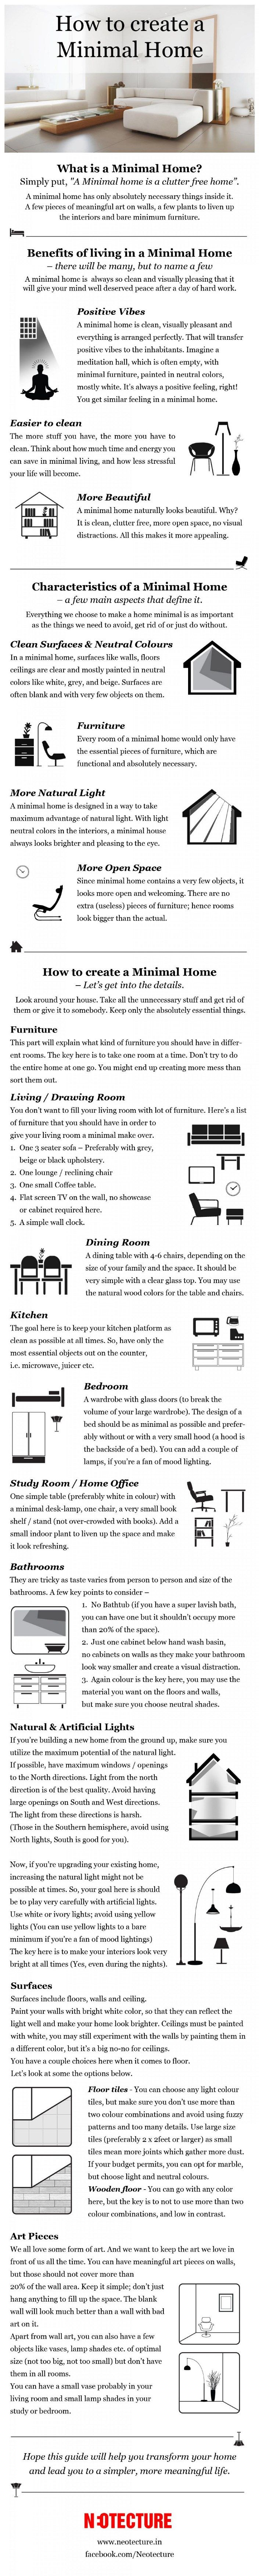 "How to Create a #Minimal Home : Found this informative infographic on Pinterest which features a rather comprehensive guide on creating a minimalistic lifestyle home. The guide defines a minimalistic home as ""clutter free"" and includes various benefits of owning one. Other than that, it also offers tips and useful decorating advice that will definitely […]"